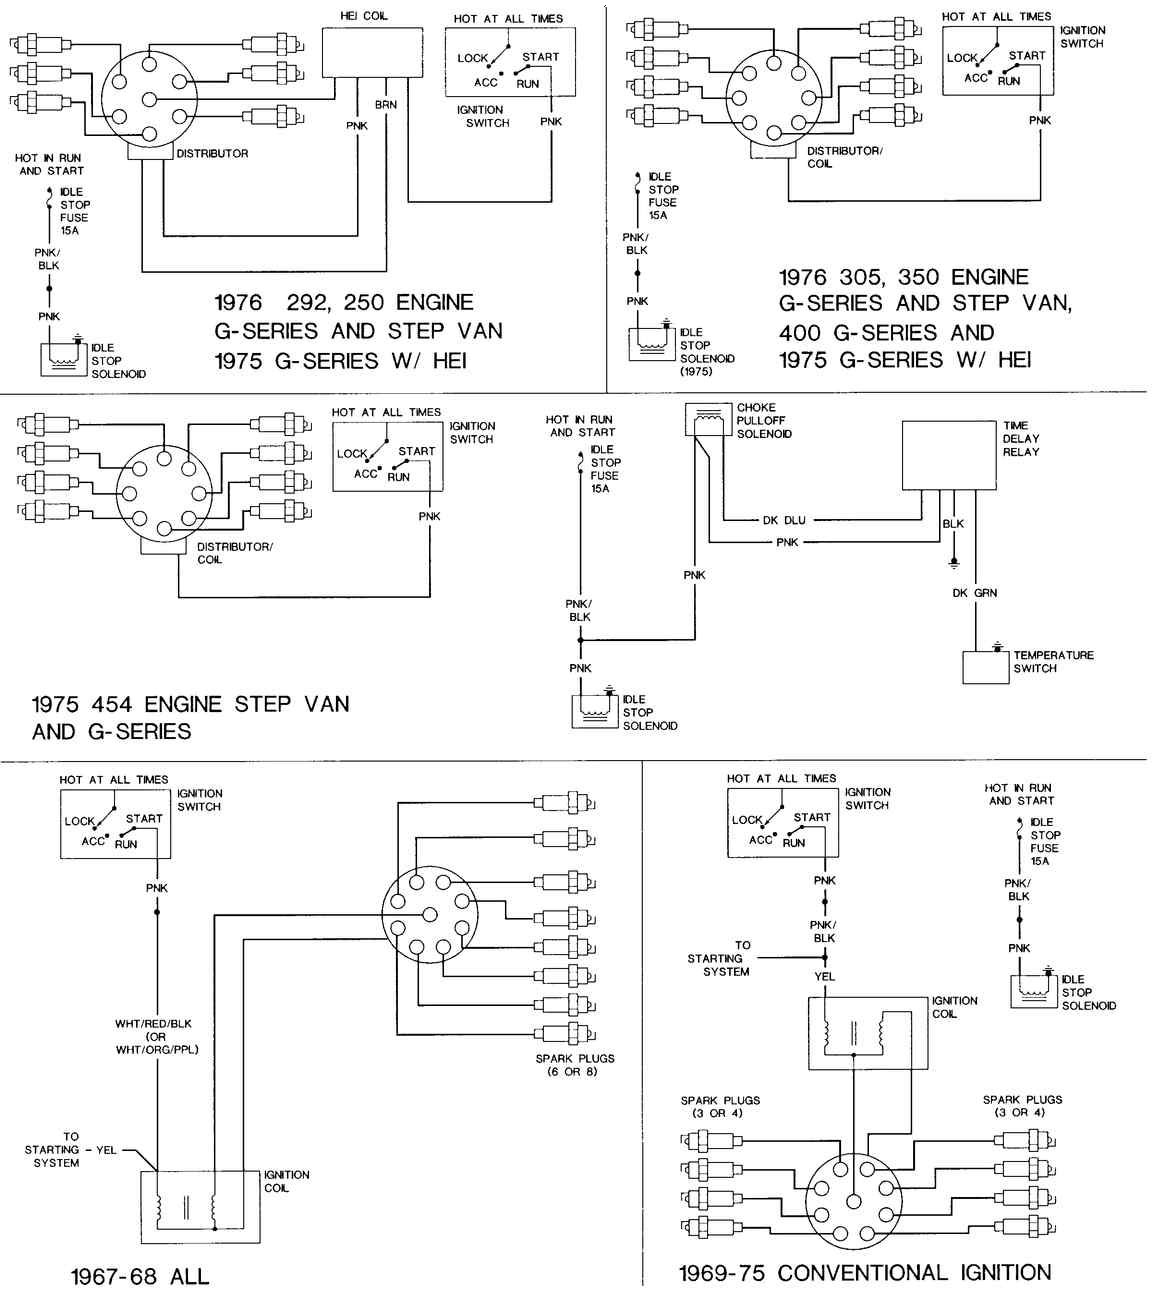 1018d1252846358 67 g10 wiring diagrams parts 89776w01l workhorse wiring diagram efcaviation com workhorse p32 wiring diagram at crackthecode.co